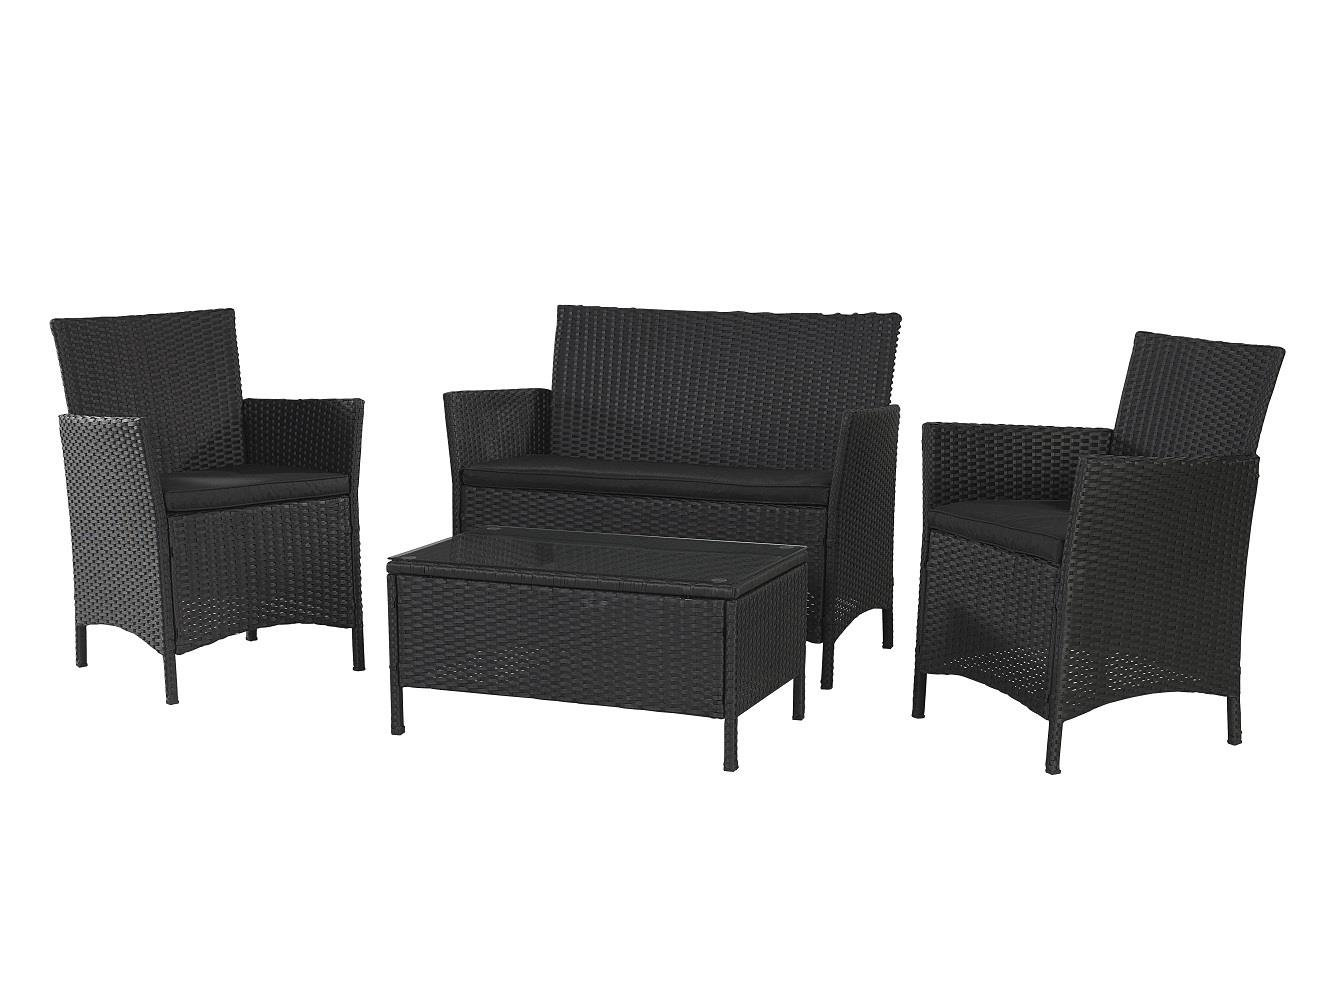 Amazon.com: Cosco Outdoor Conversation Set, 4 Piece, Black Wicker: Garden U0026  Outdoor